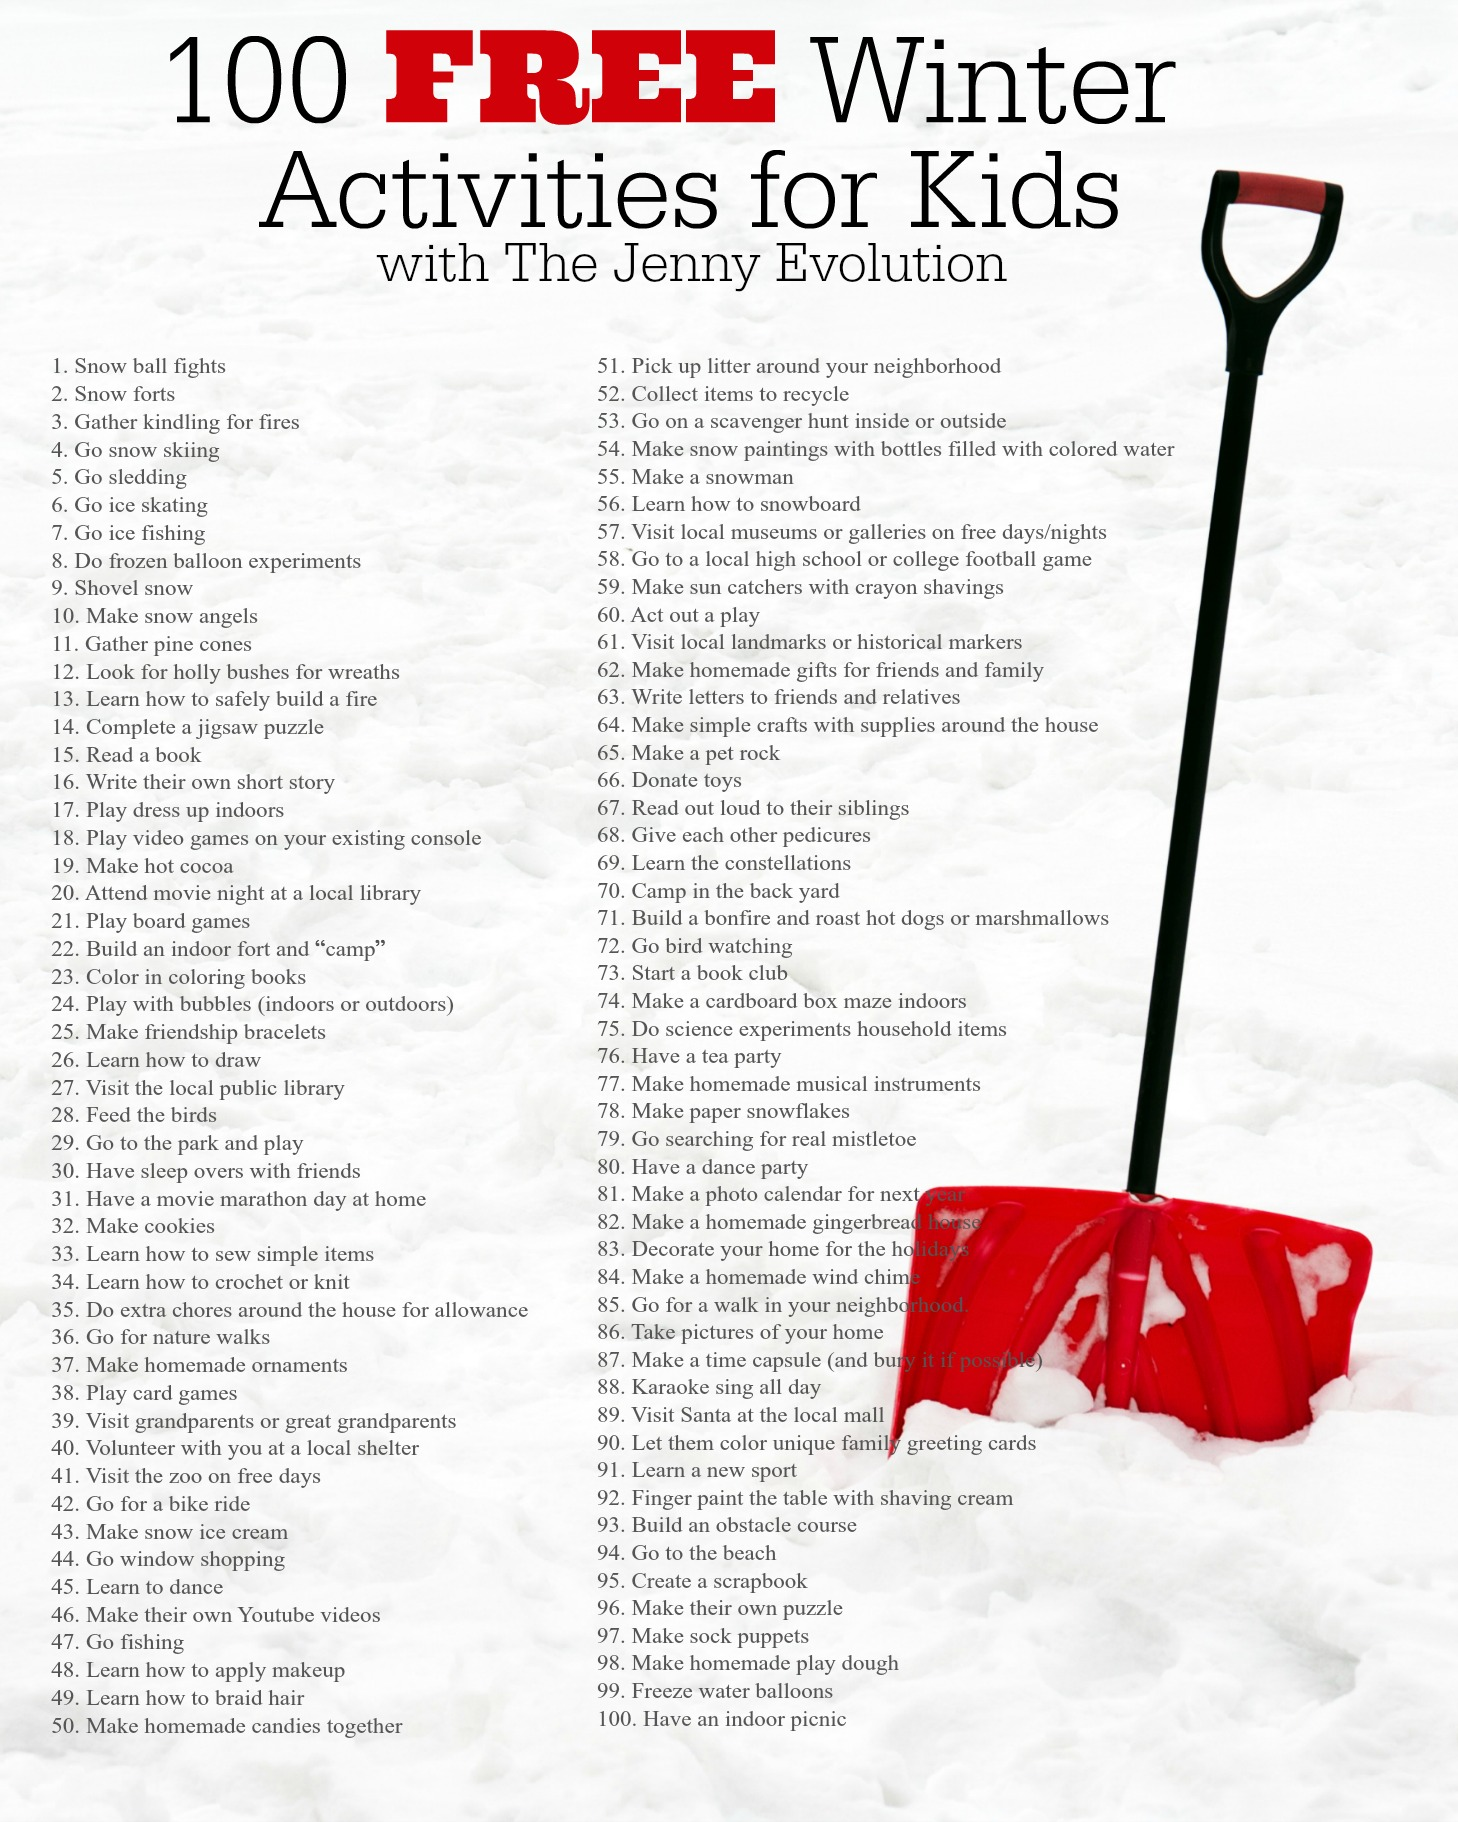 100 Free Winter Activities For Kids